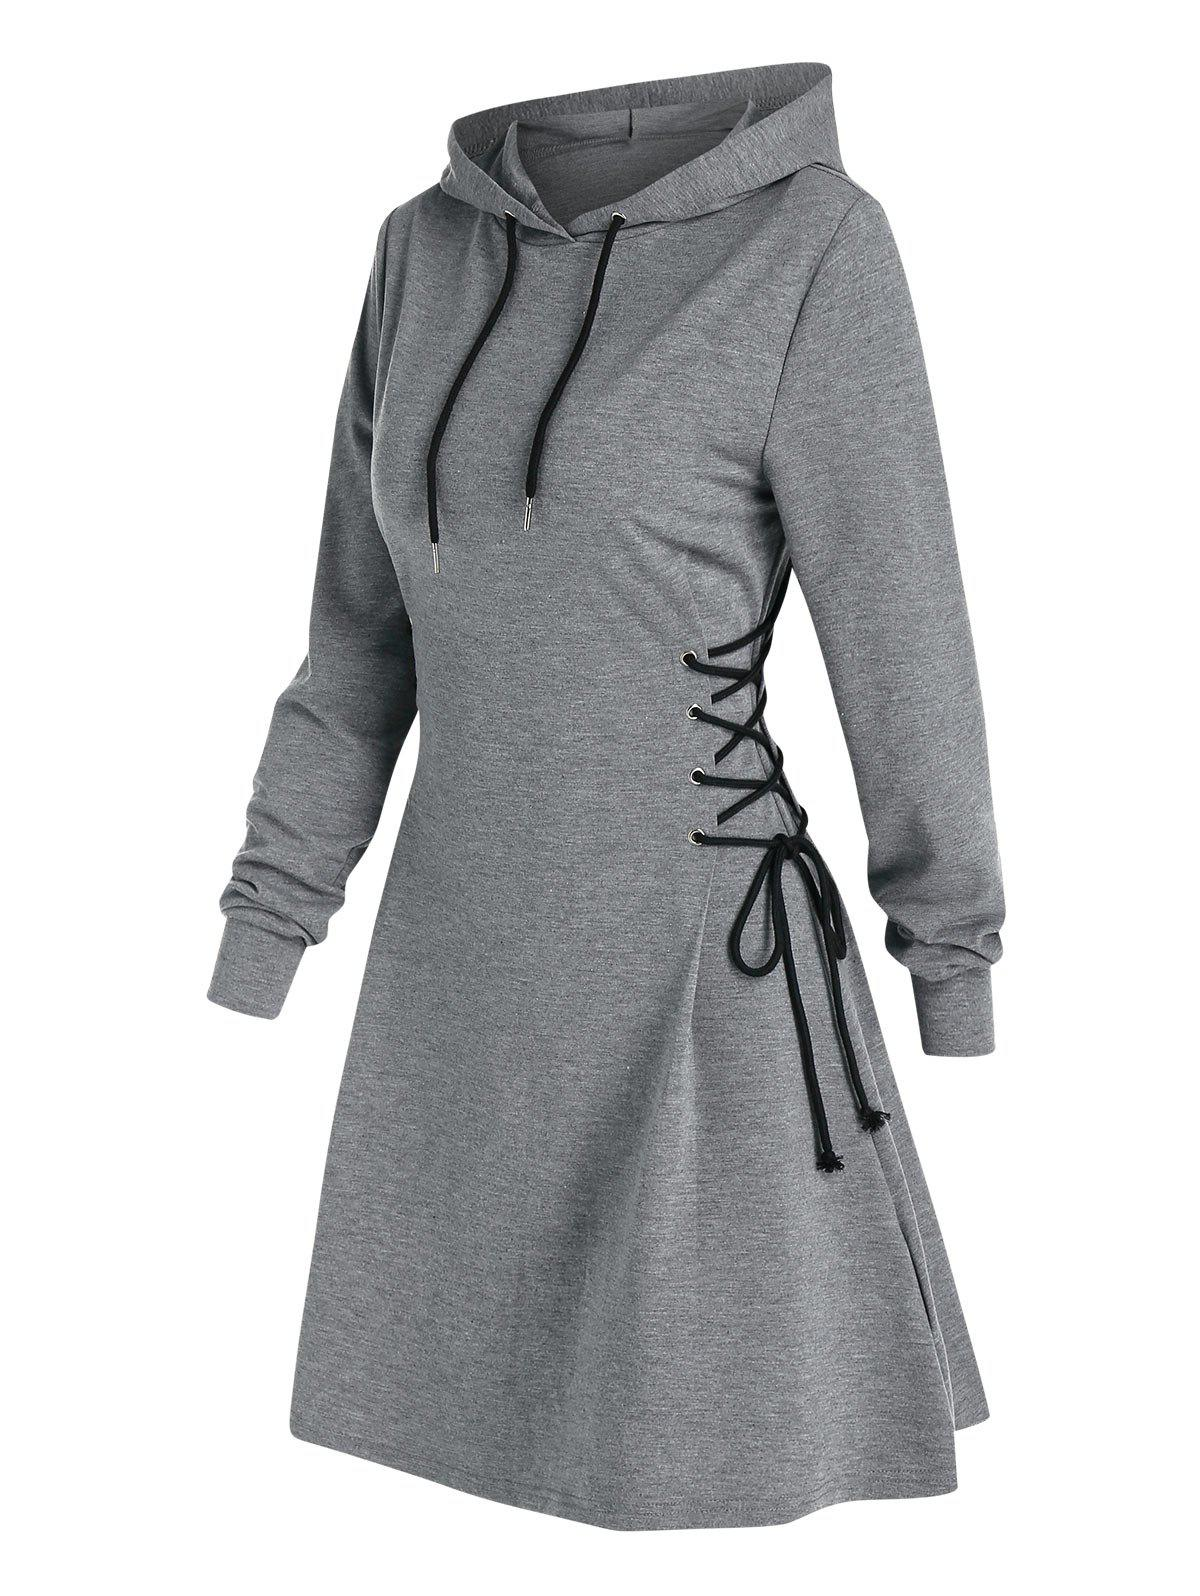 Lace Up Mini Hoodie Dress - LIGHT GRAY XL